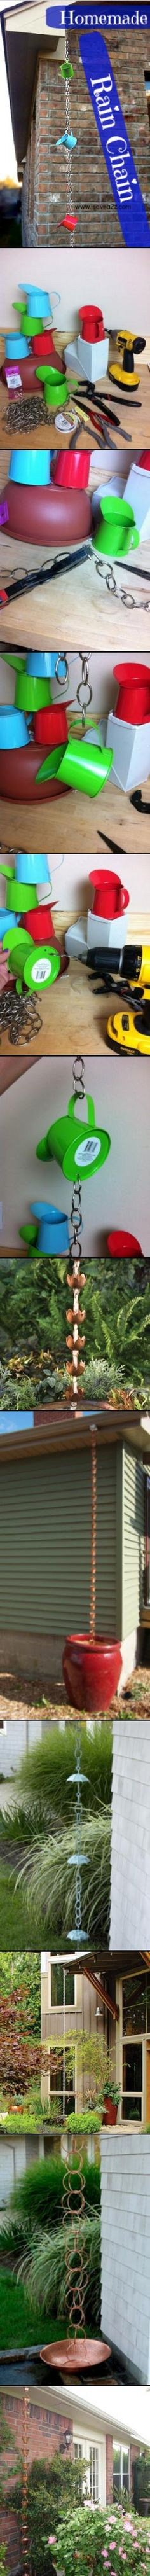 Easy Rain Chain made from products I found at the dollar store!!!!  I made this for 12 dollars!!